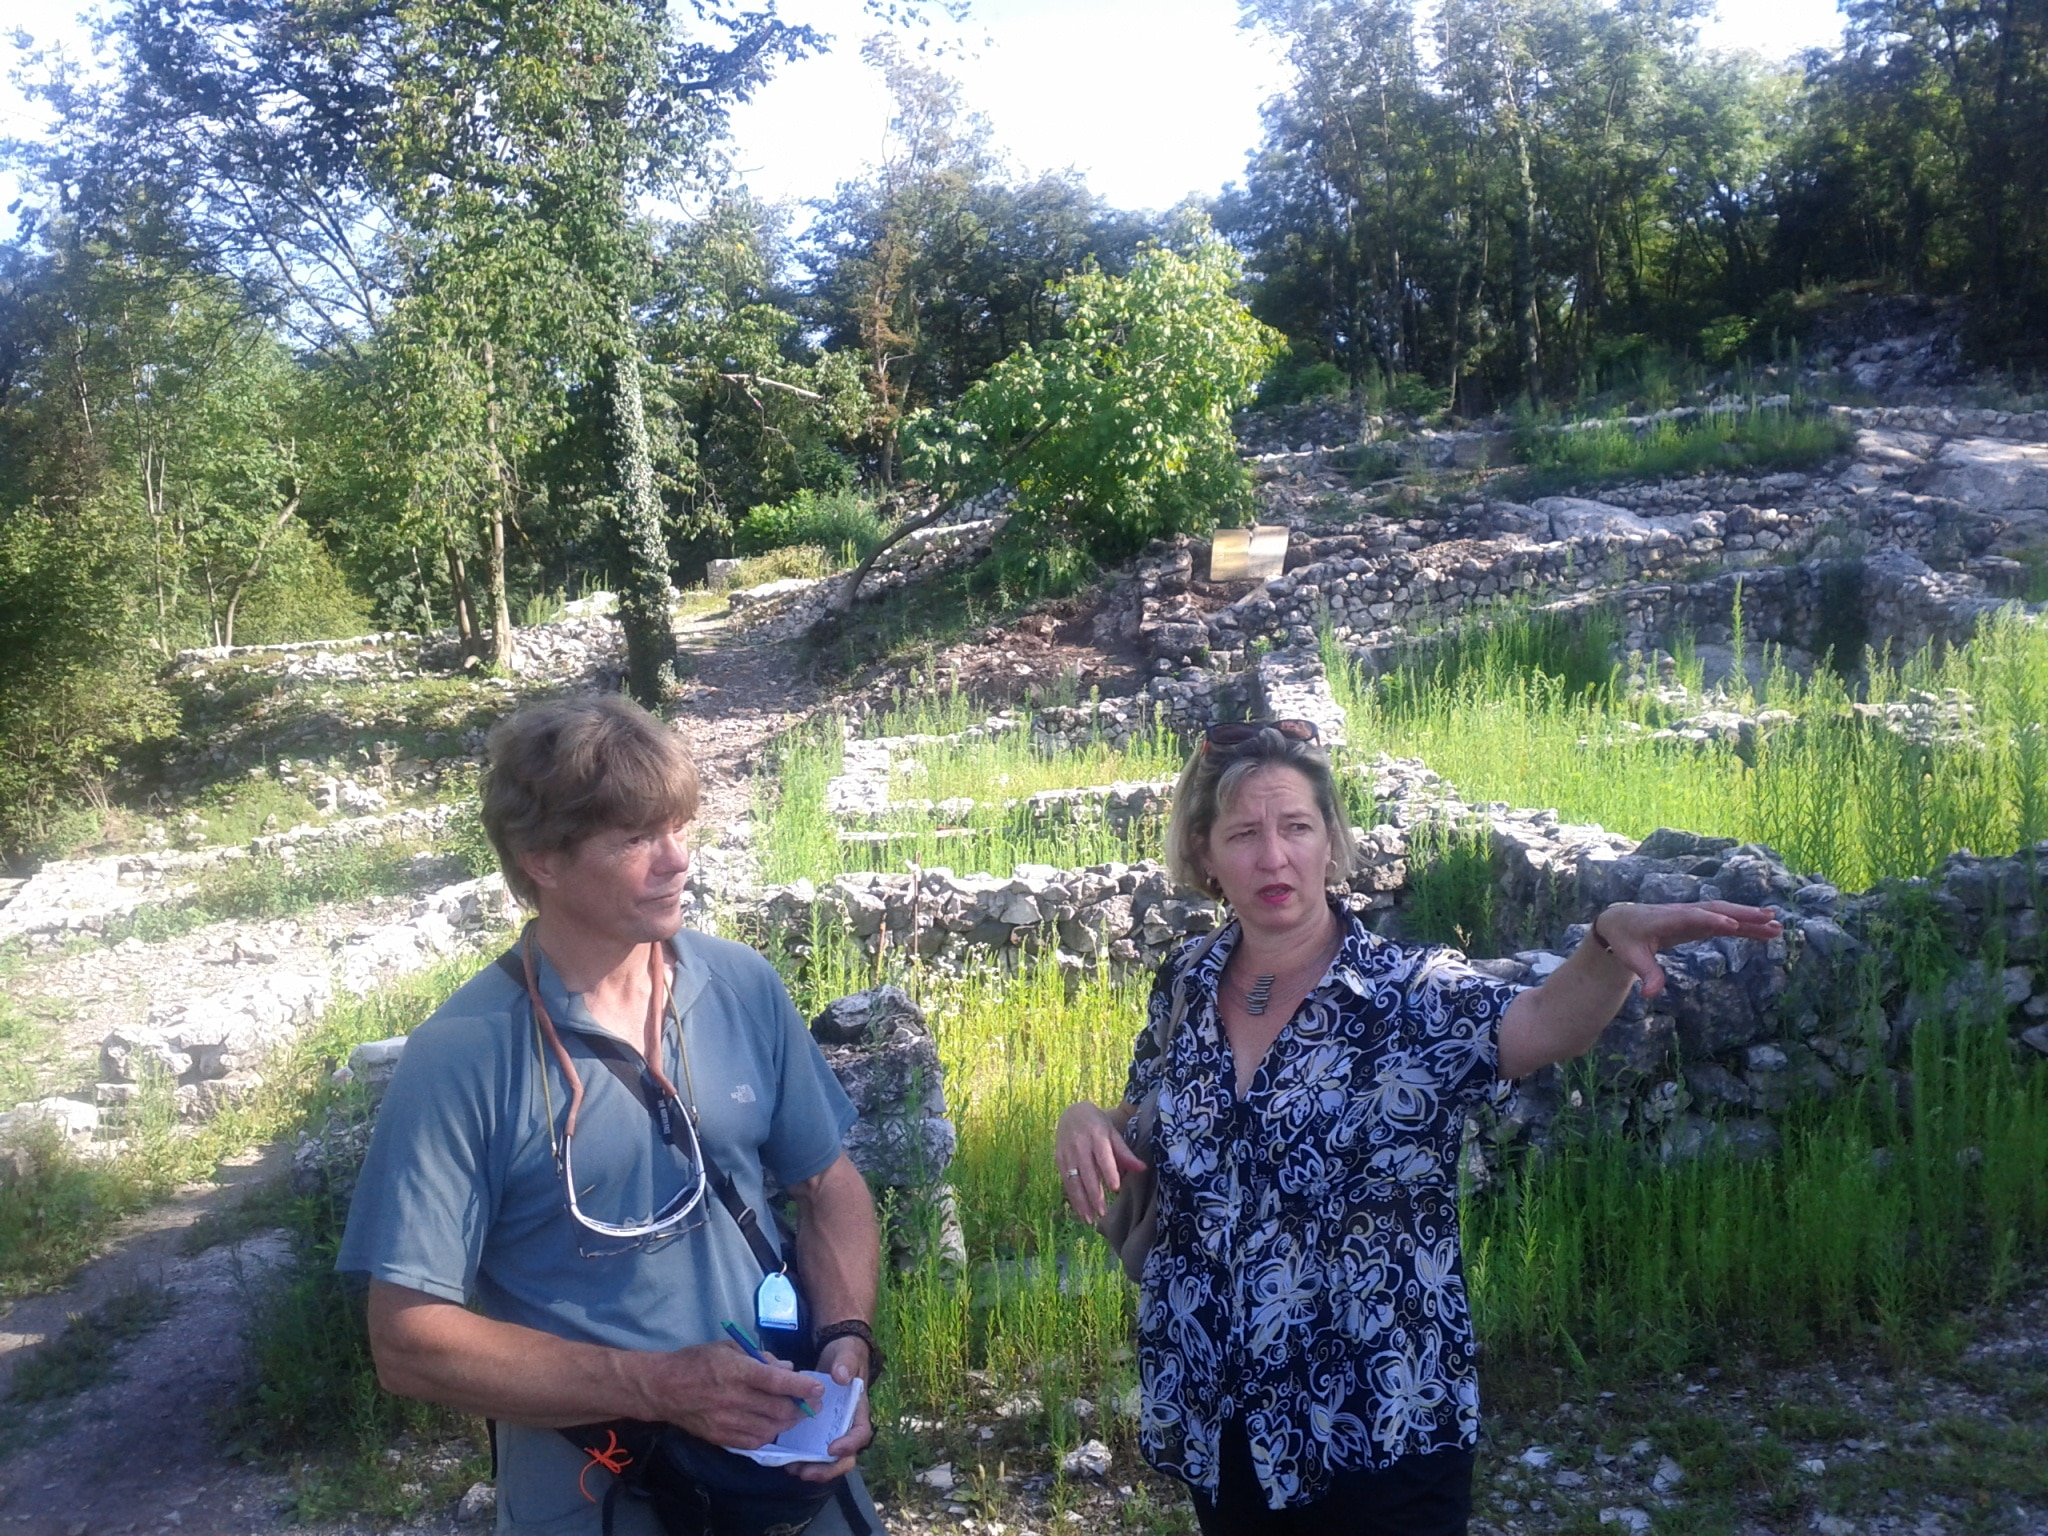 Nadia Fontana-Lupi showing me the hilltop archaeolog​ical site of Tremona-Ca​stello.